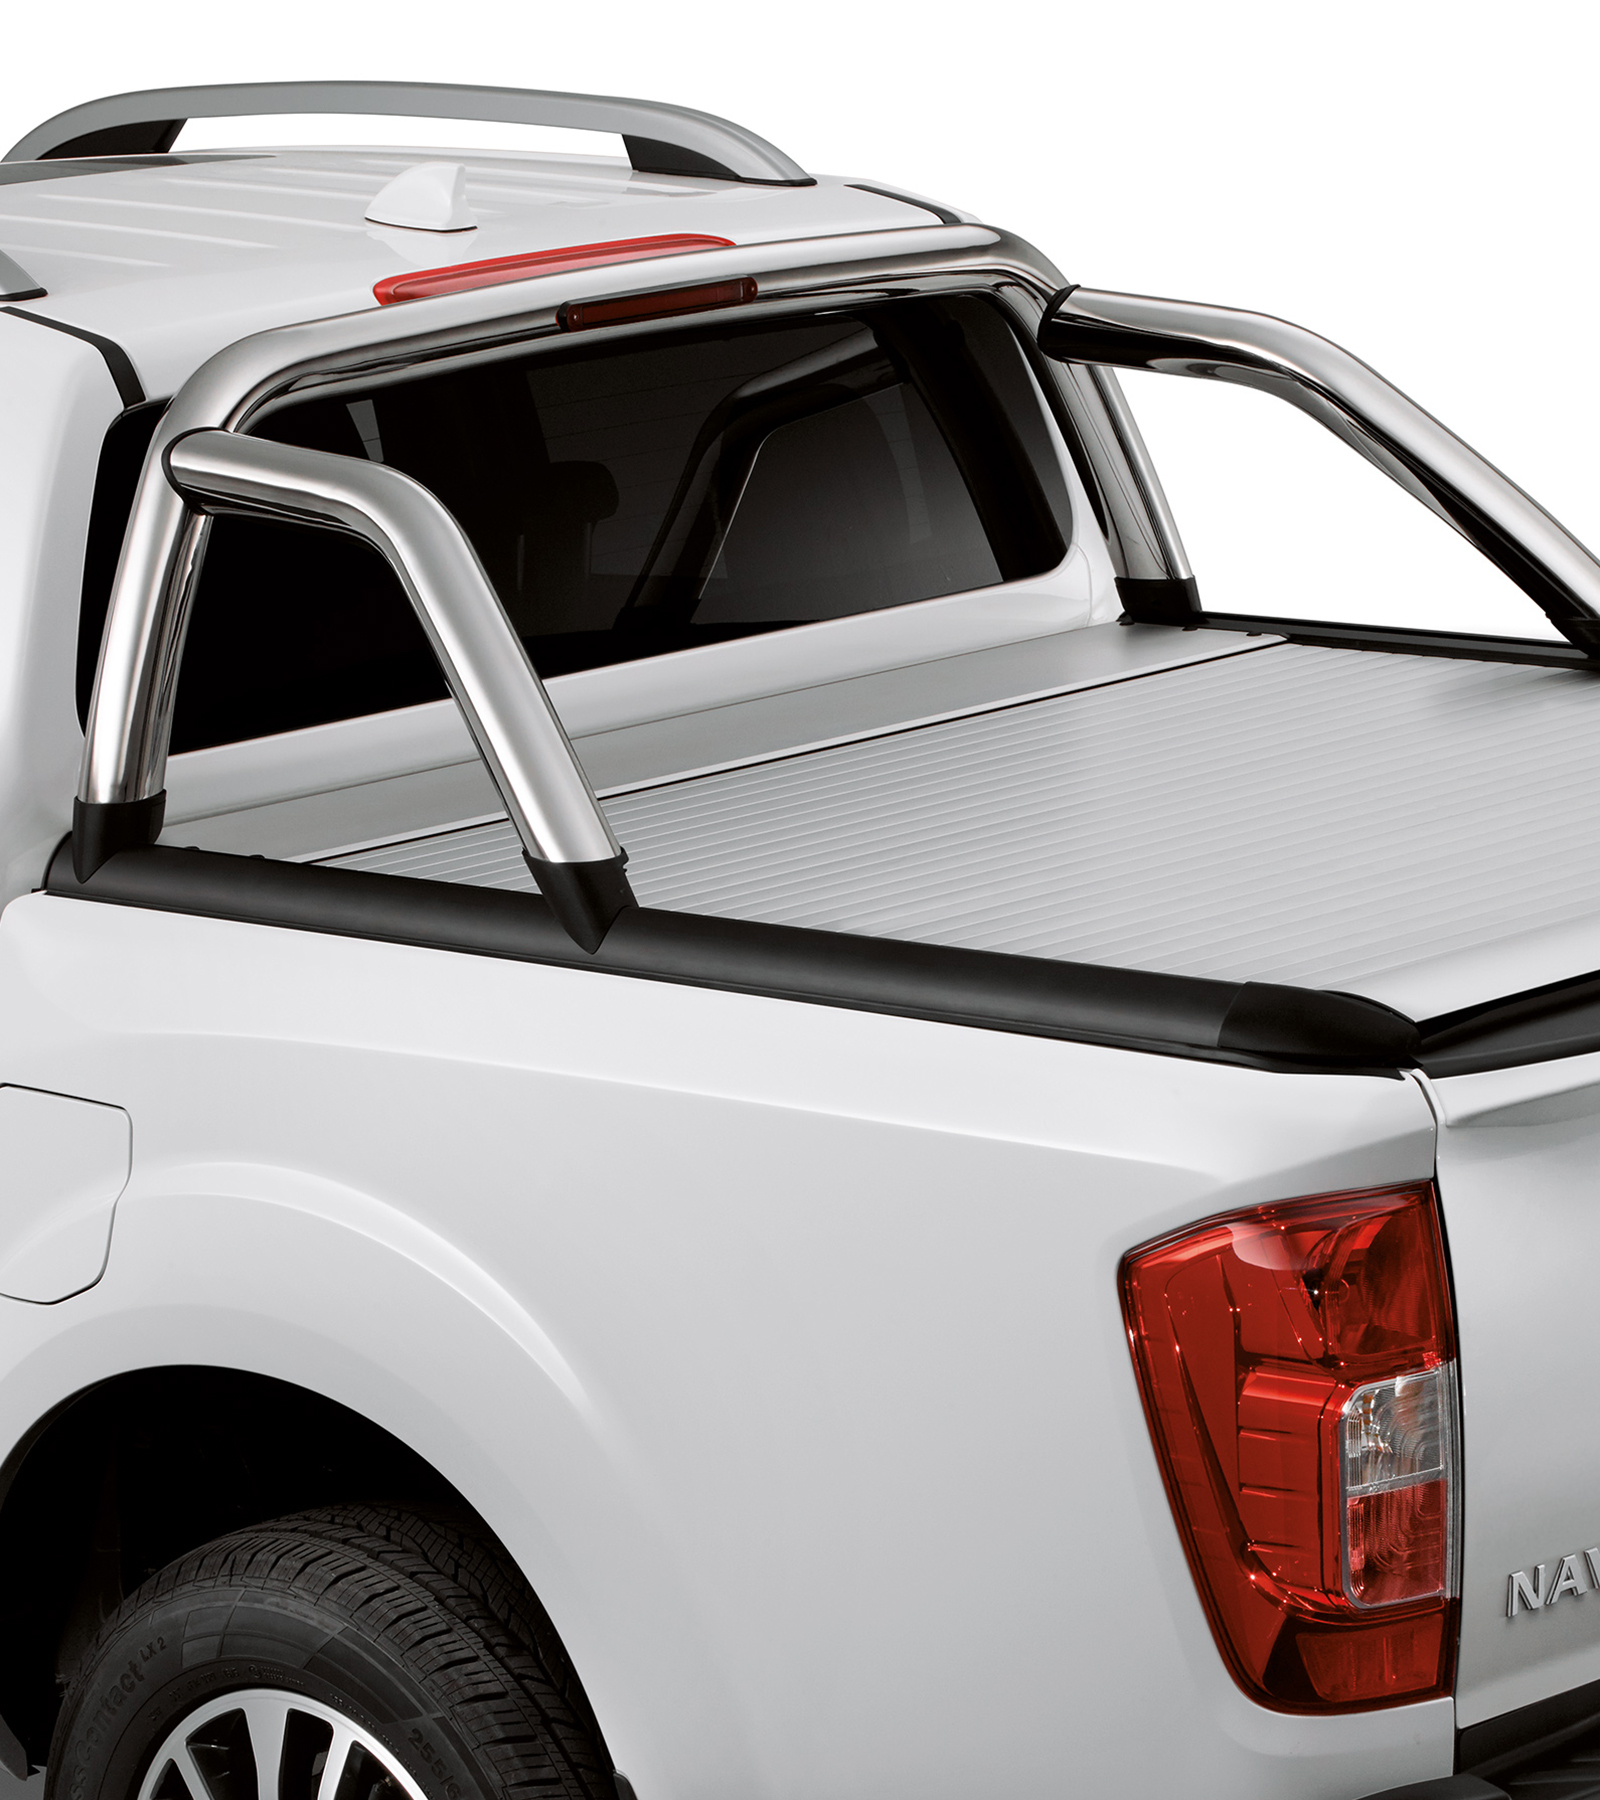 Nissan Navara bed styling bar compatible with roll cover